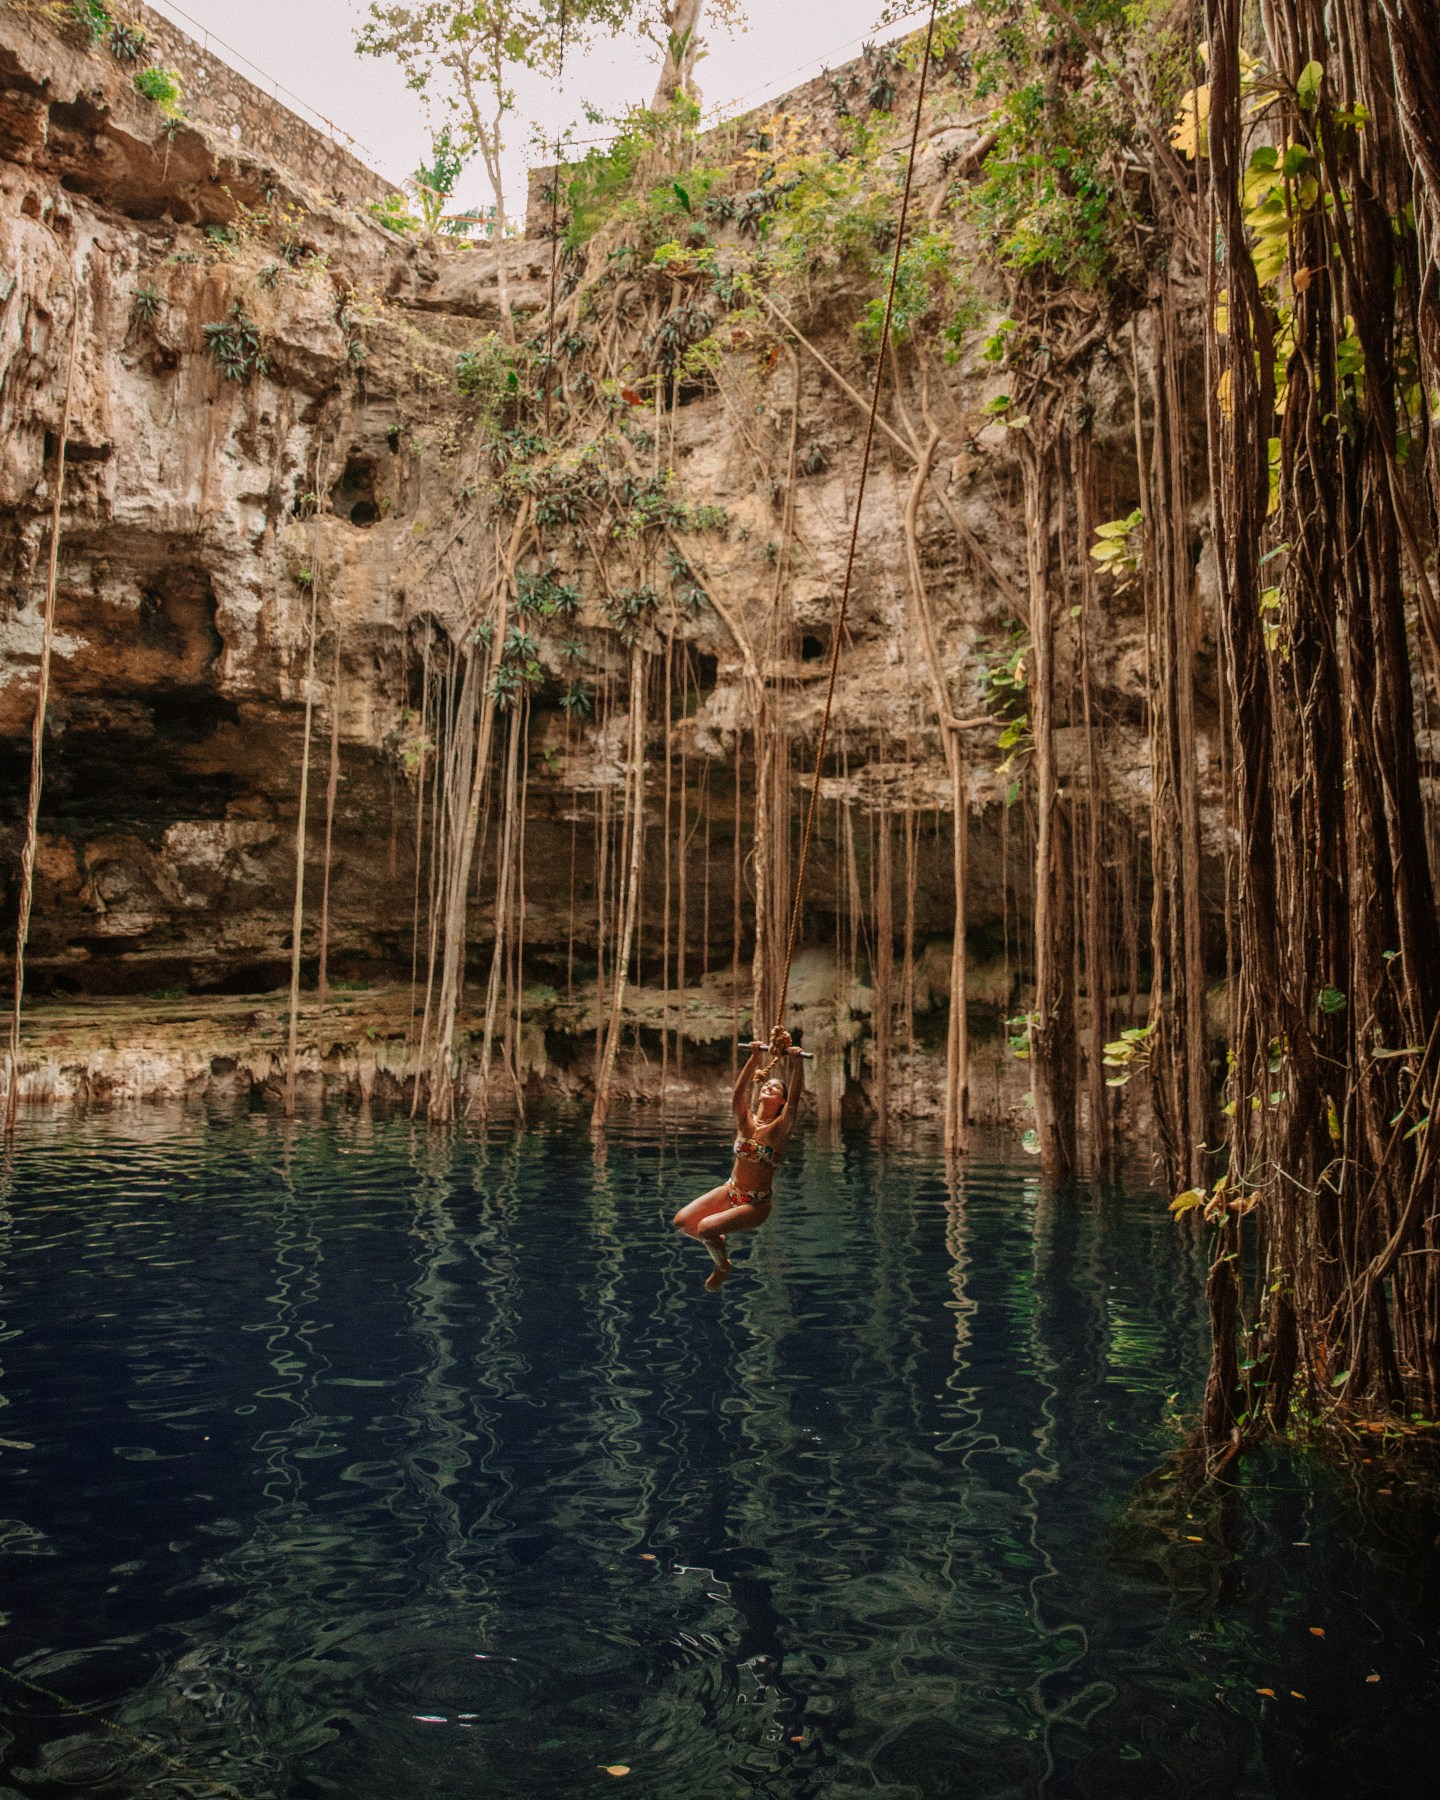 Cenote Oxman Yucatan. This guide gives you tips for all of the best cenotes in Tulum and the best cenotes near Tulum including what to pack for the best Tulum cenotes and more. If you are looking for day trips from Tulum, check out the best cenotes in Quintana Roo and best cenotes in Yucatan for ideas! | Tulum cenotes photography | cenotes Mexico tulum | cenotes tulum riviera maya | best cenotes in quintana roo | cenotes quintana roo | cenotes in playa del carmen